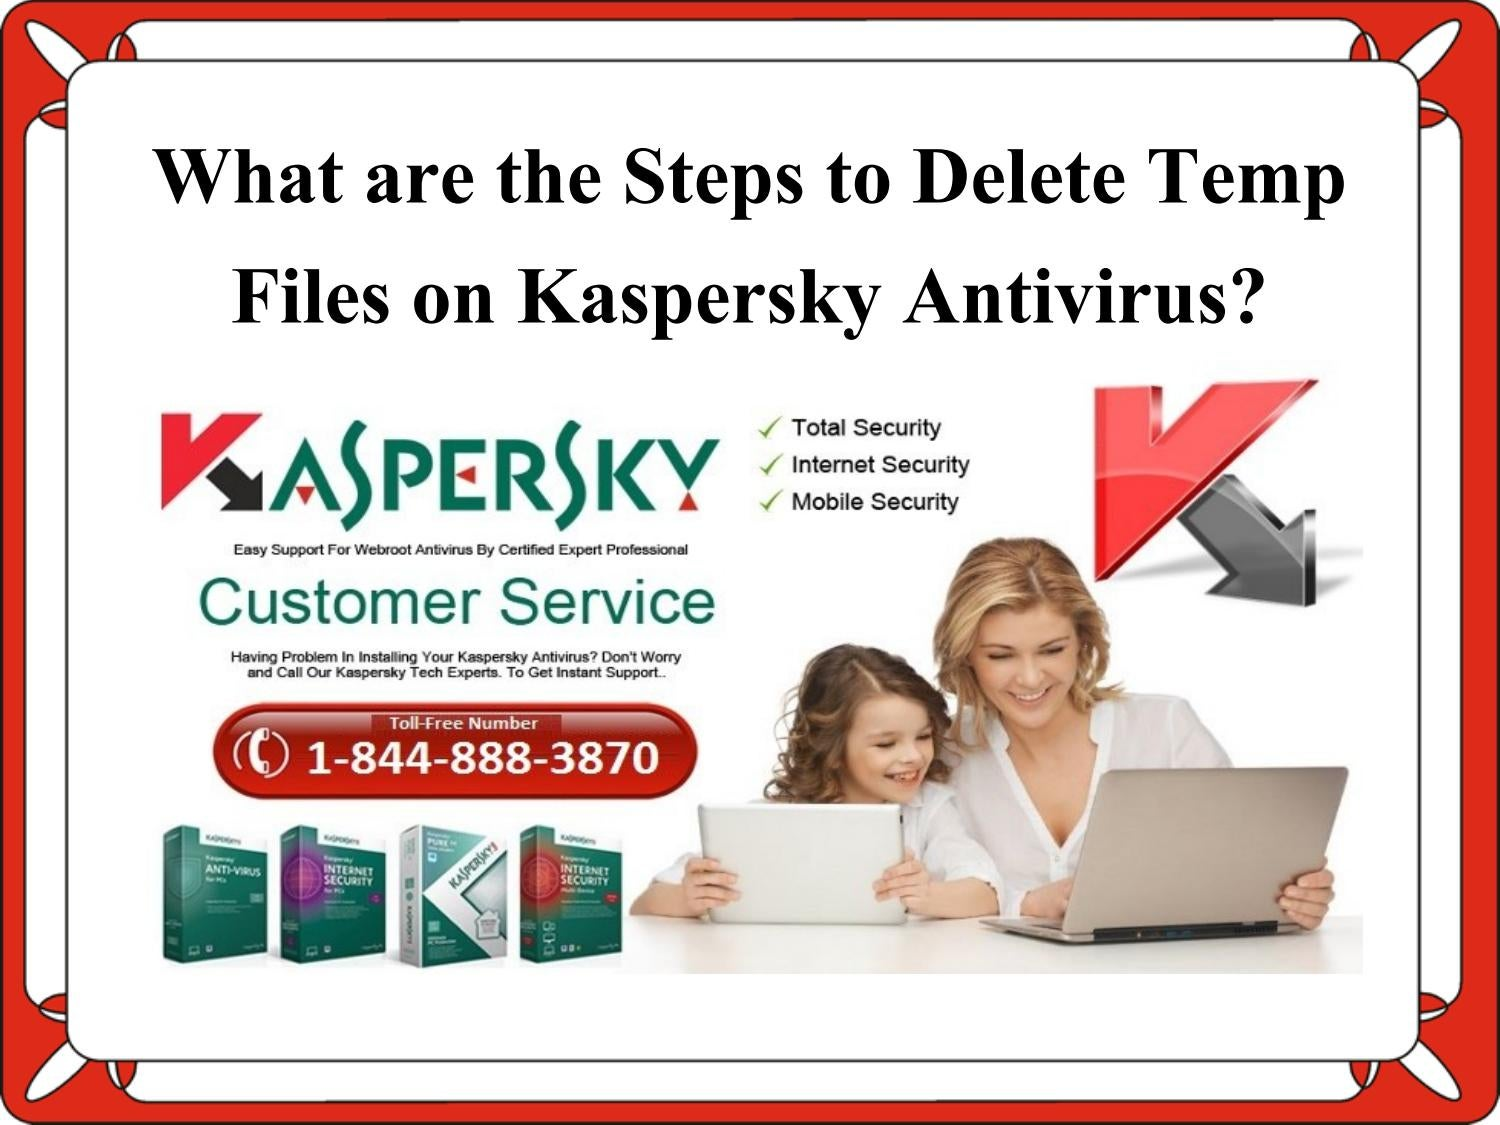 What are the steps to delete temp files on Kaspersky antivirus? by